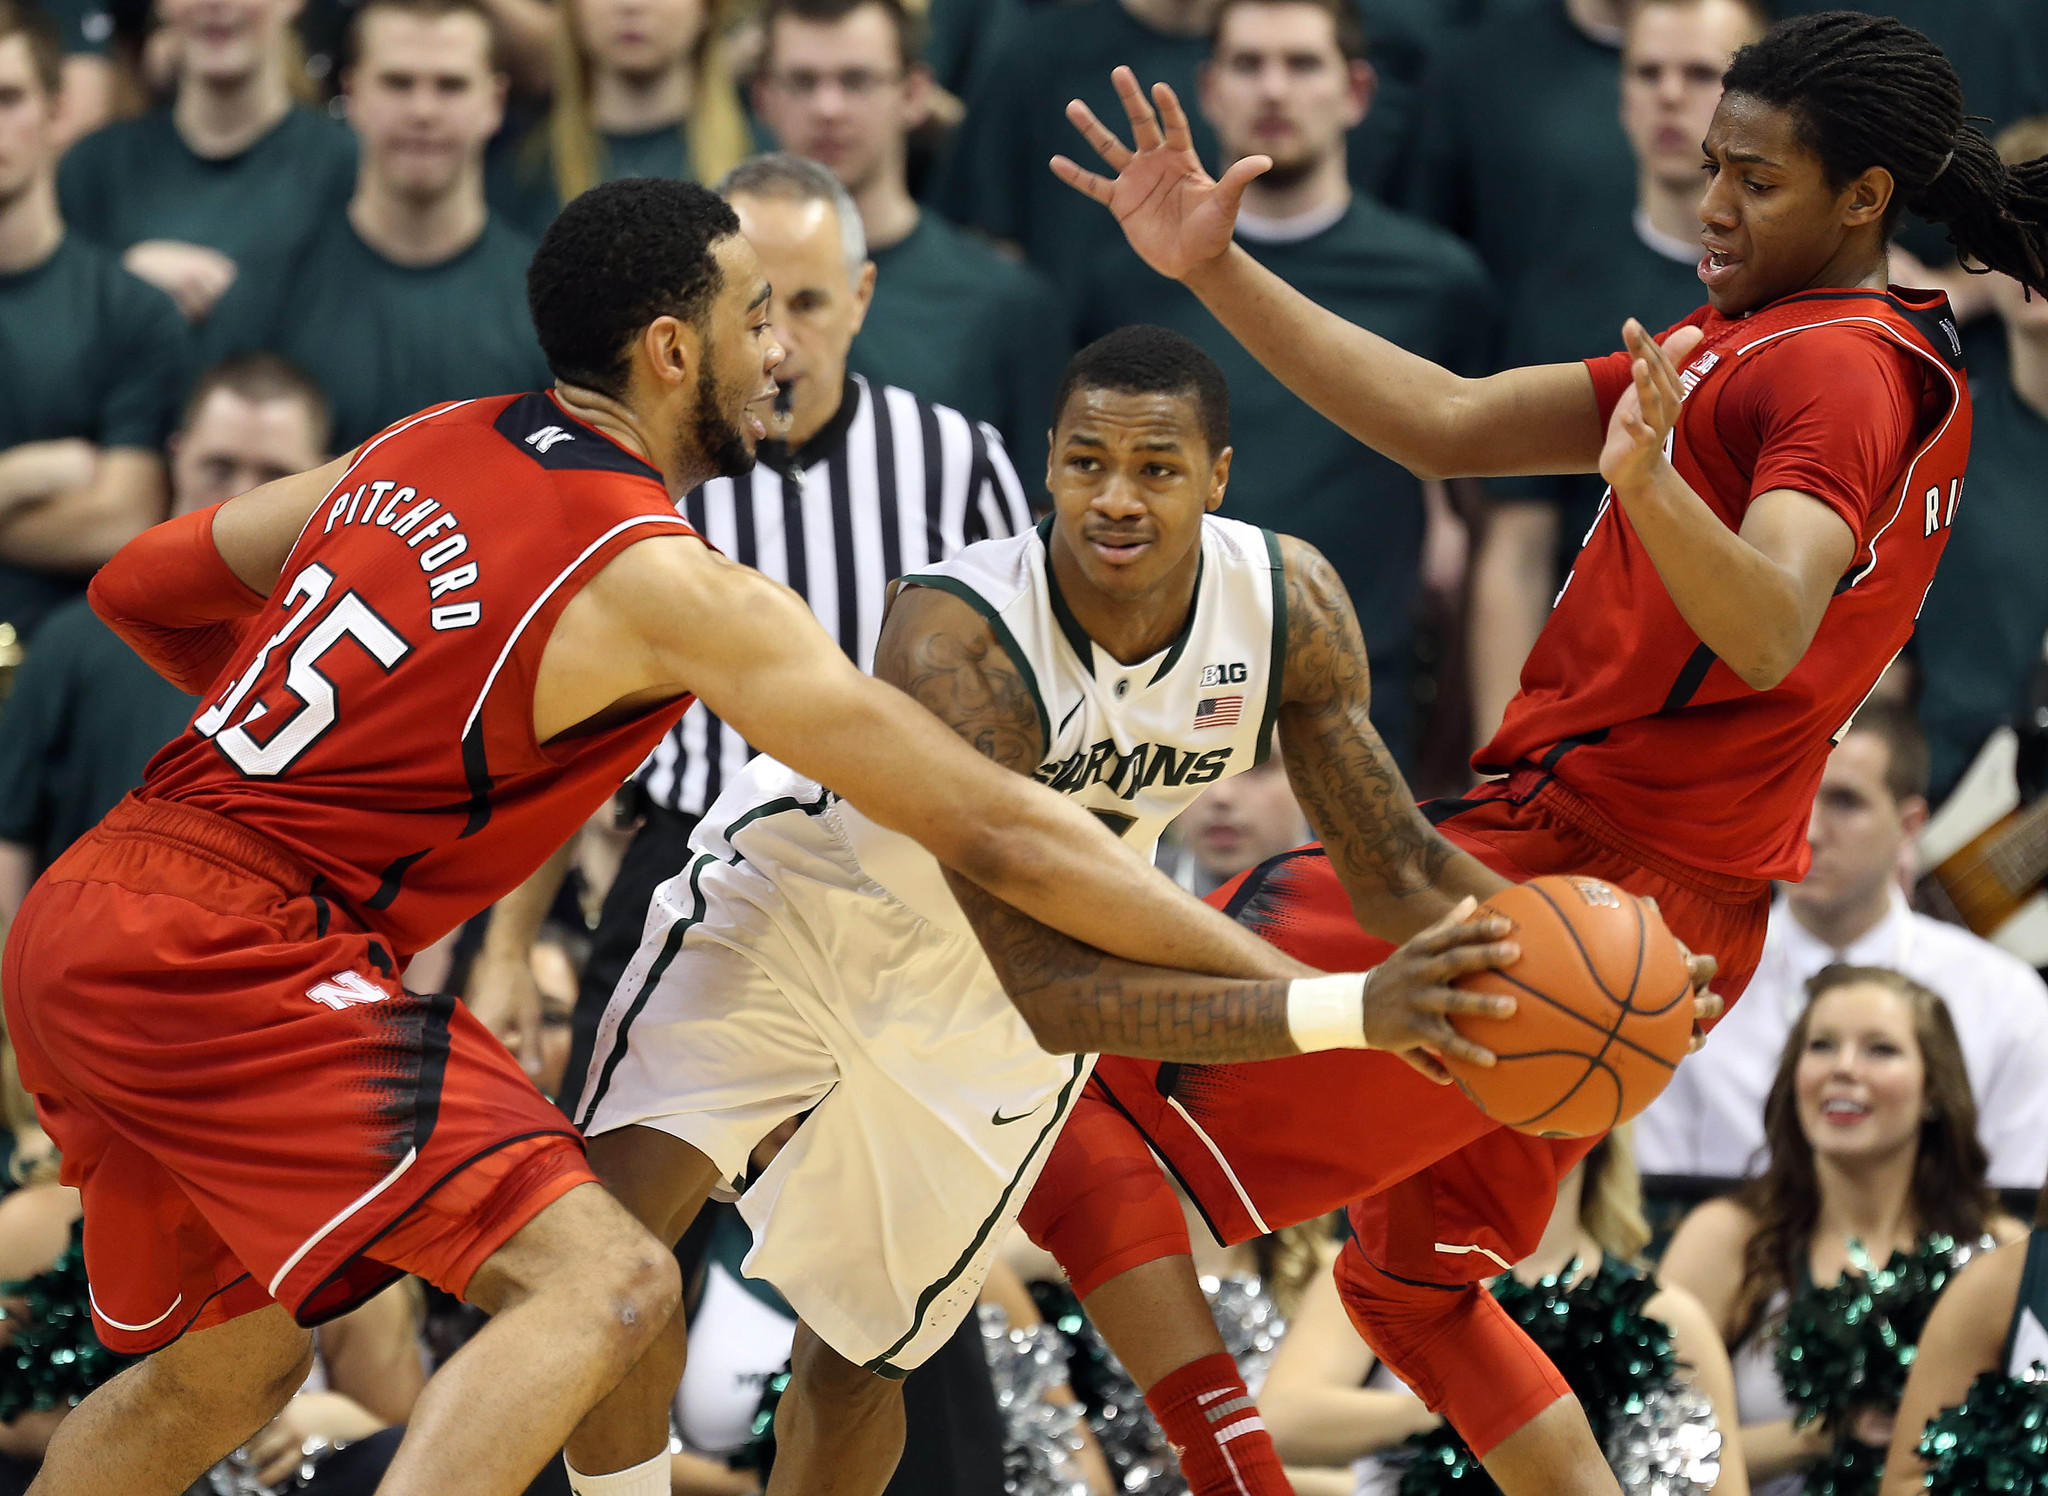 Michigan State's Keith Appling is fouled by Nebraska's Walter Pitchford during the first half at Jack Breslin Student Events Center.